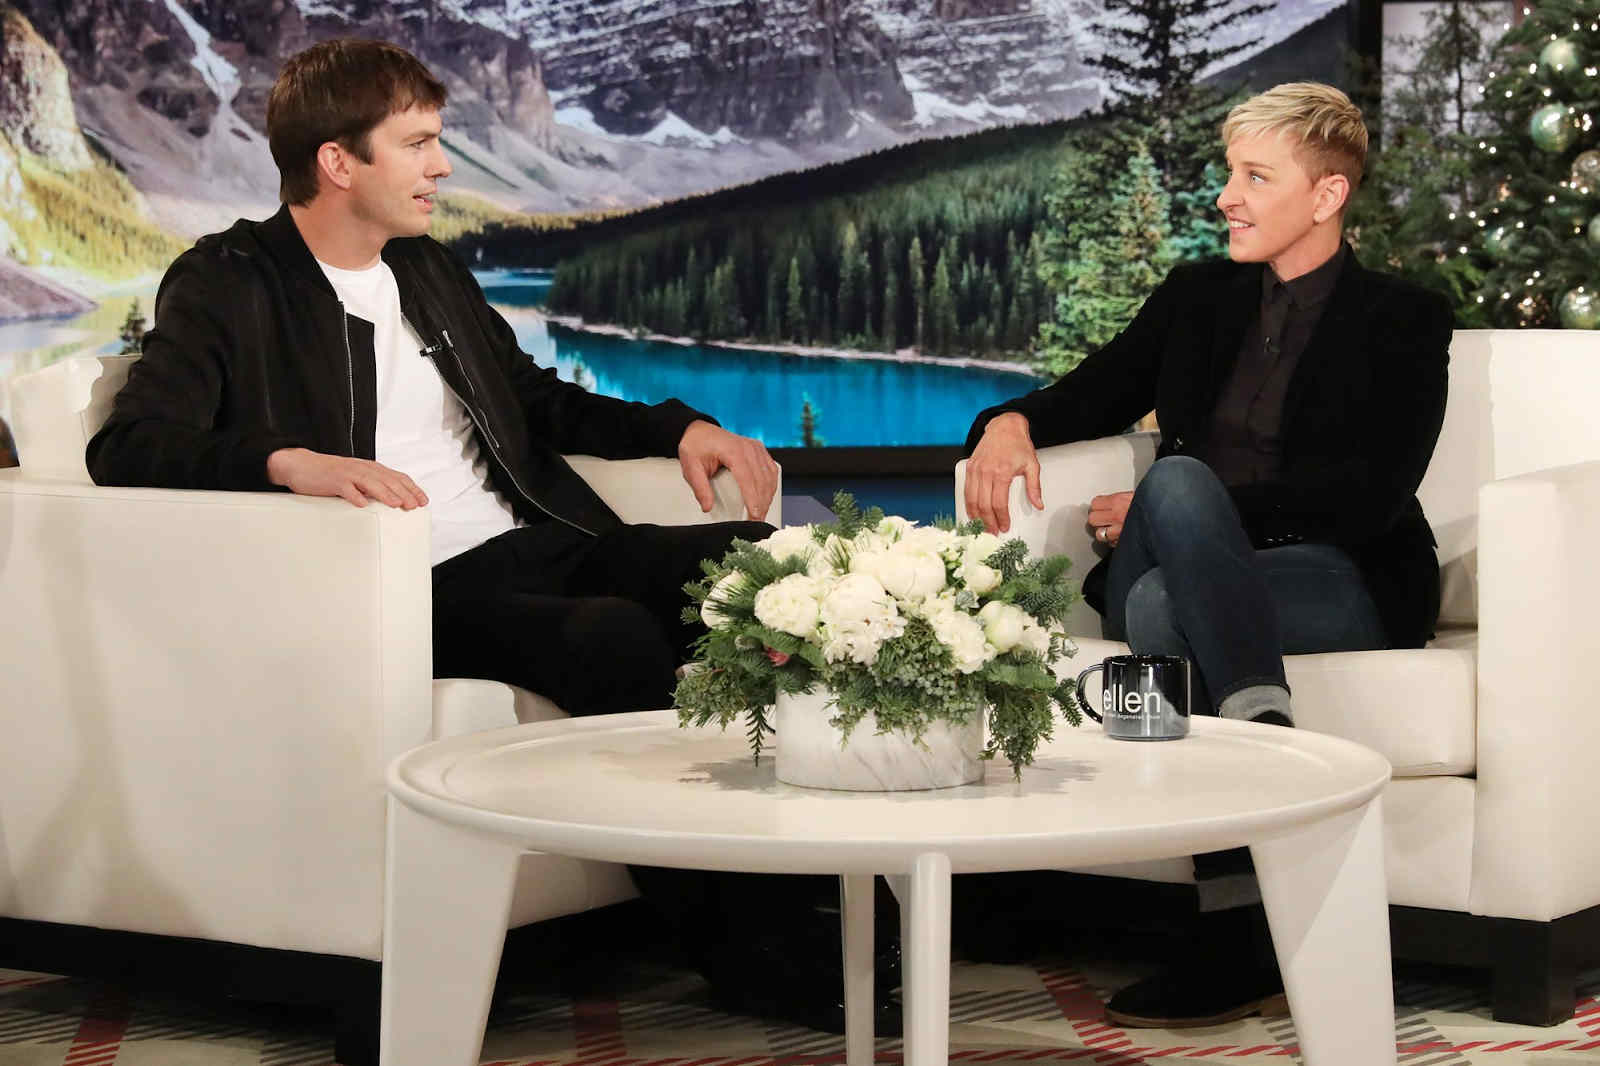 Burglary at Ellen DeGeneres' home was an 'inside job'